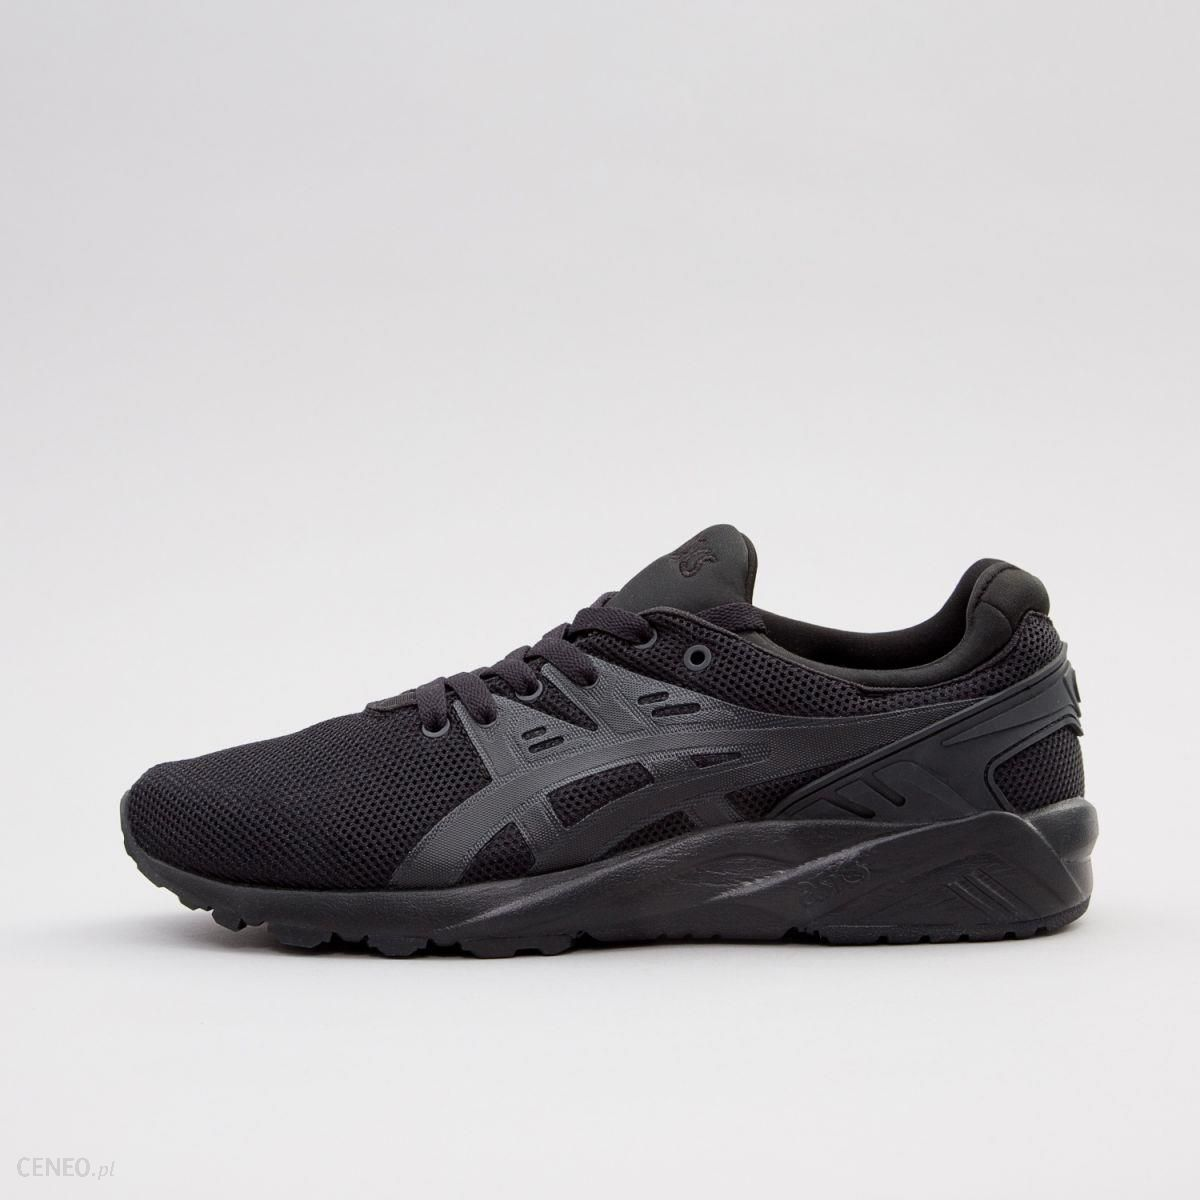 Asics Gel Kayano Trainer HN6A0 9090